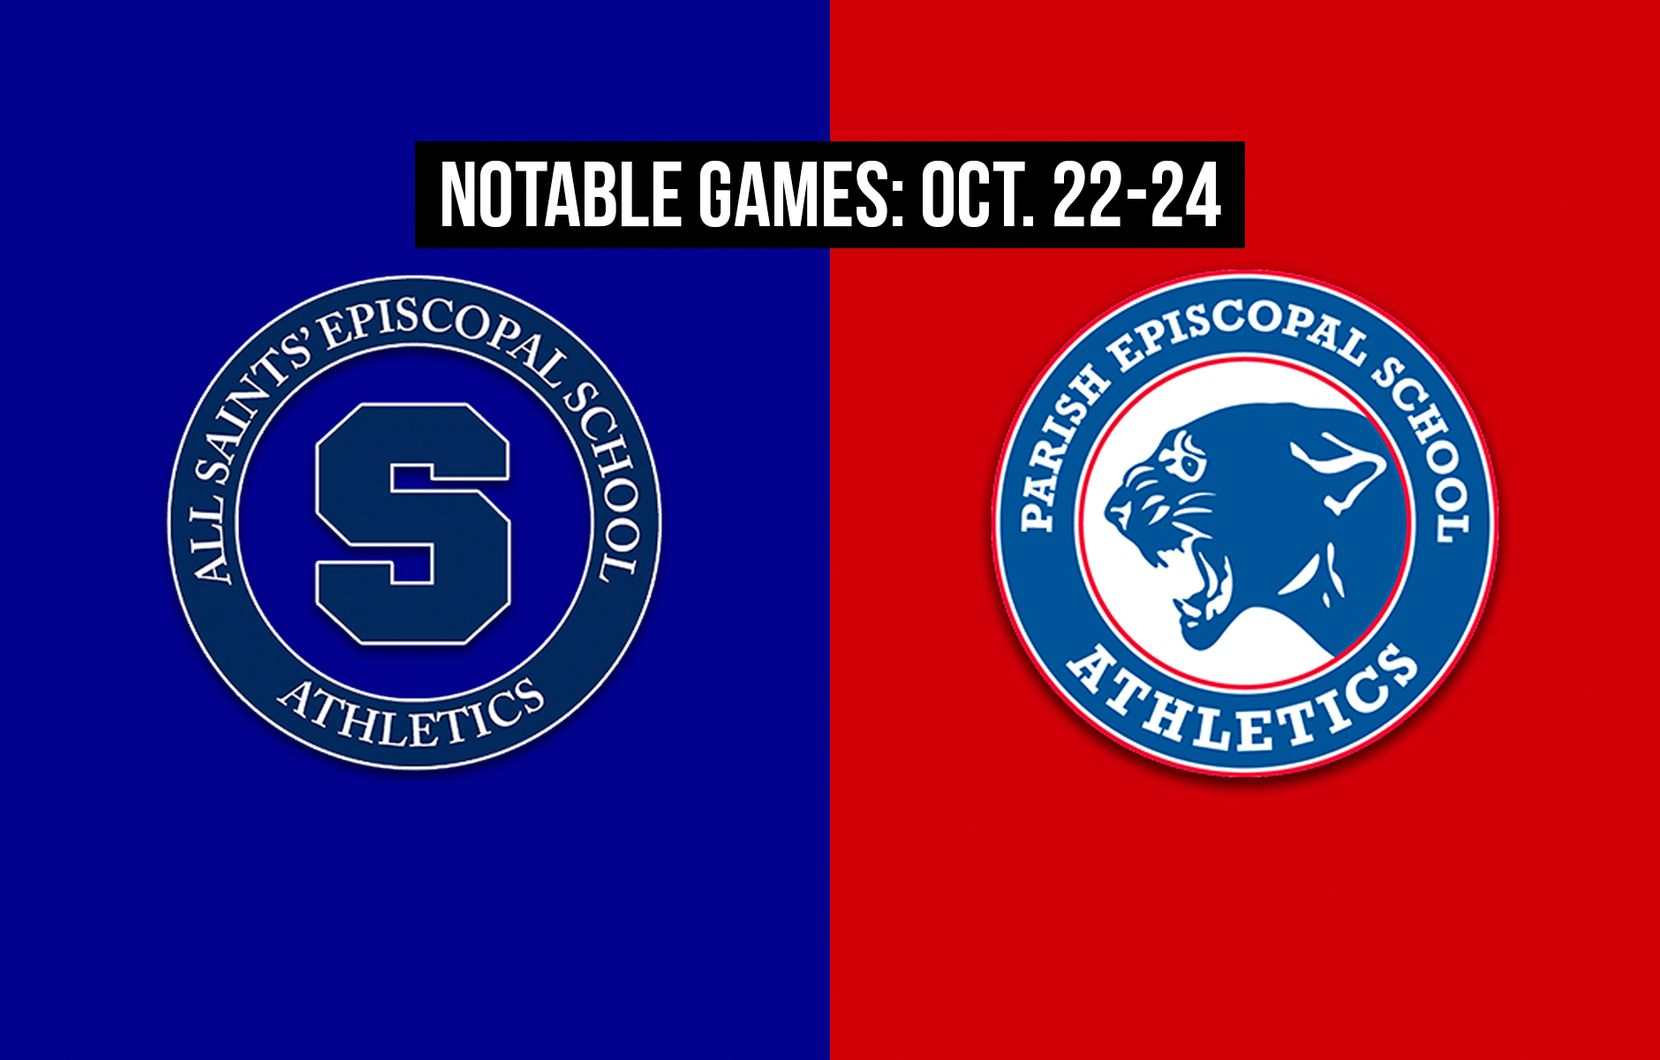 Notable games for the week of Oct. 22-24 of the 2020 season: Fort Worth All Saints vs. Parish Episcopal.